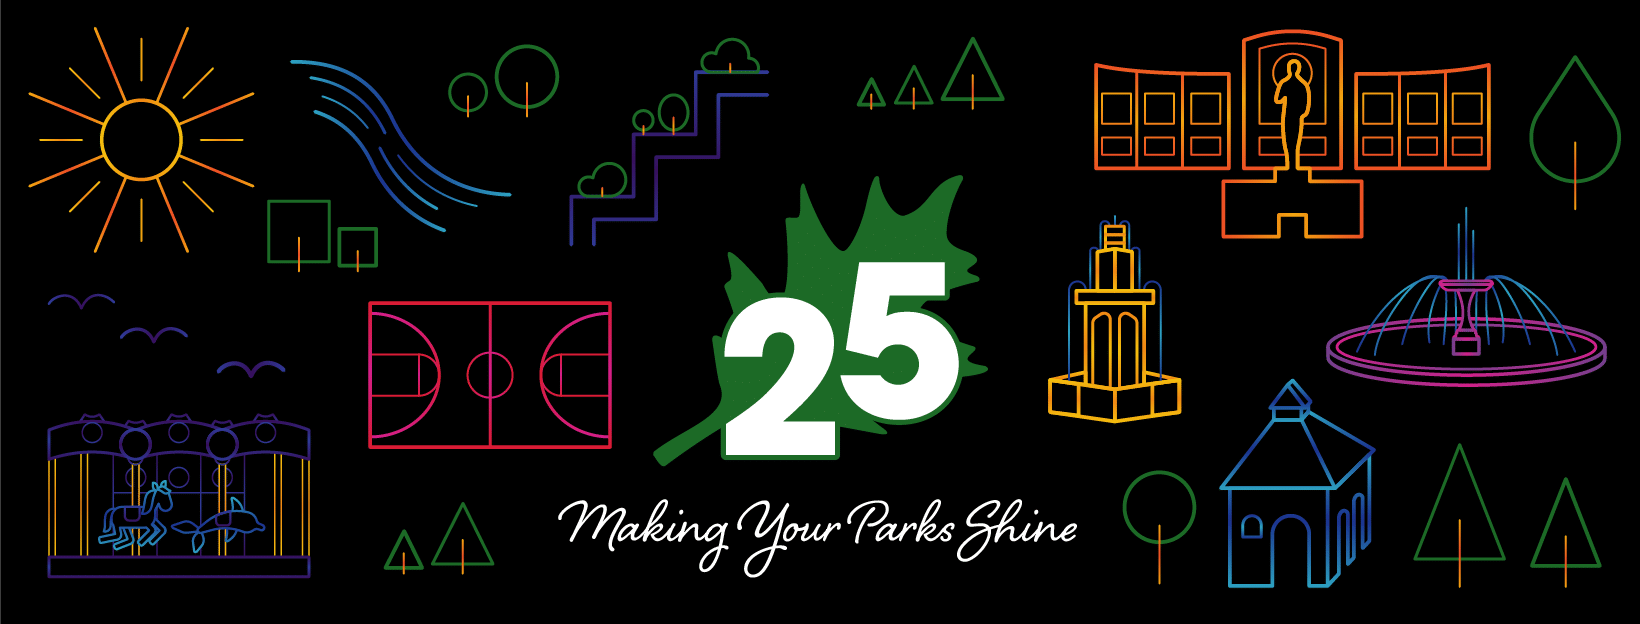 25 Years of Parks: Making Your Parks Shine banner